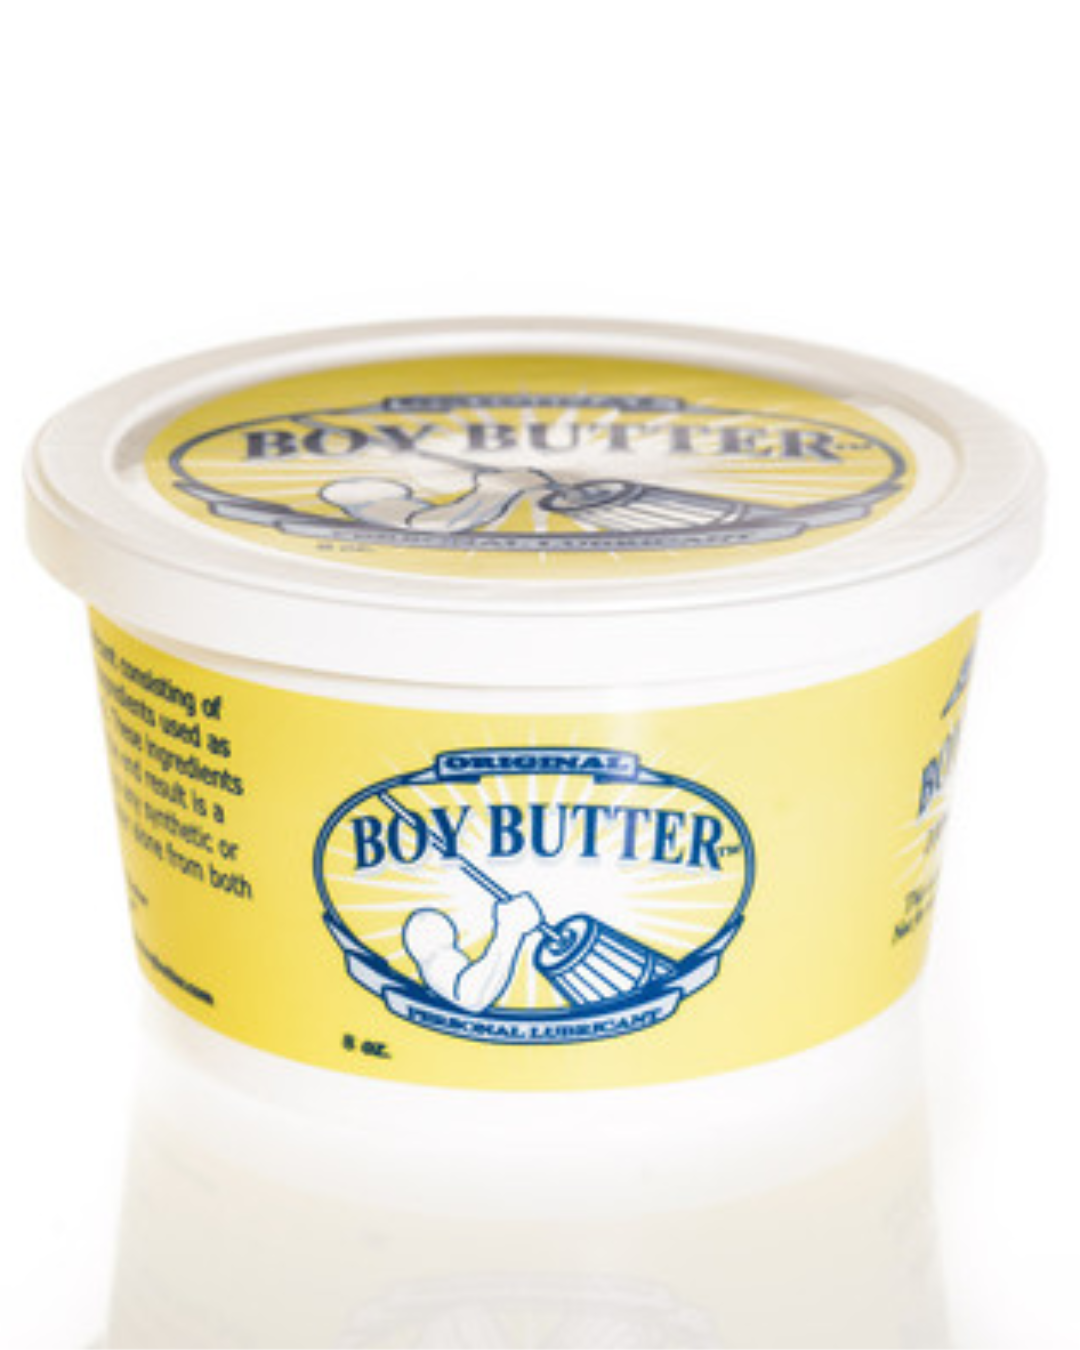 Boy Butter Original Oil Based Lubricant with Coconut Oil 8 oz